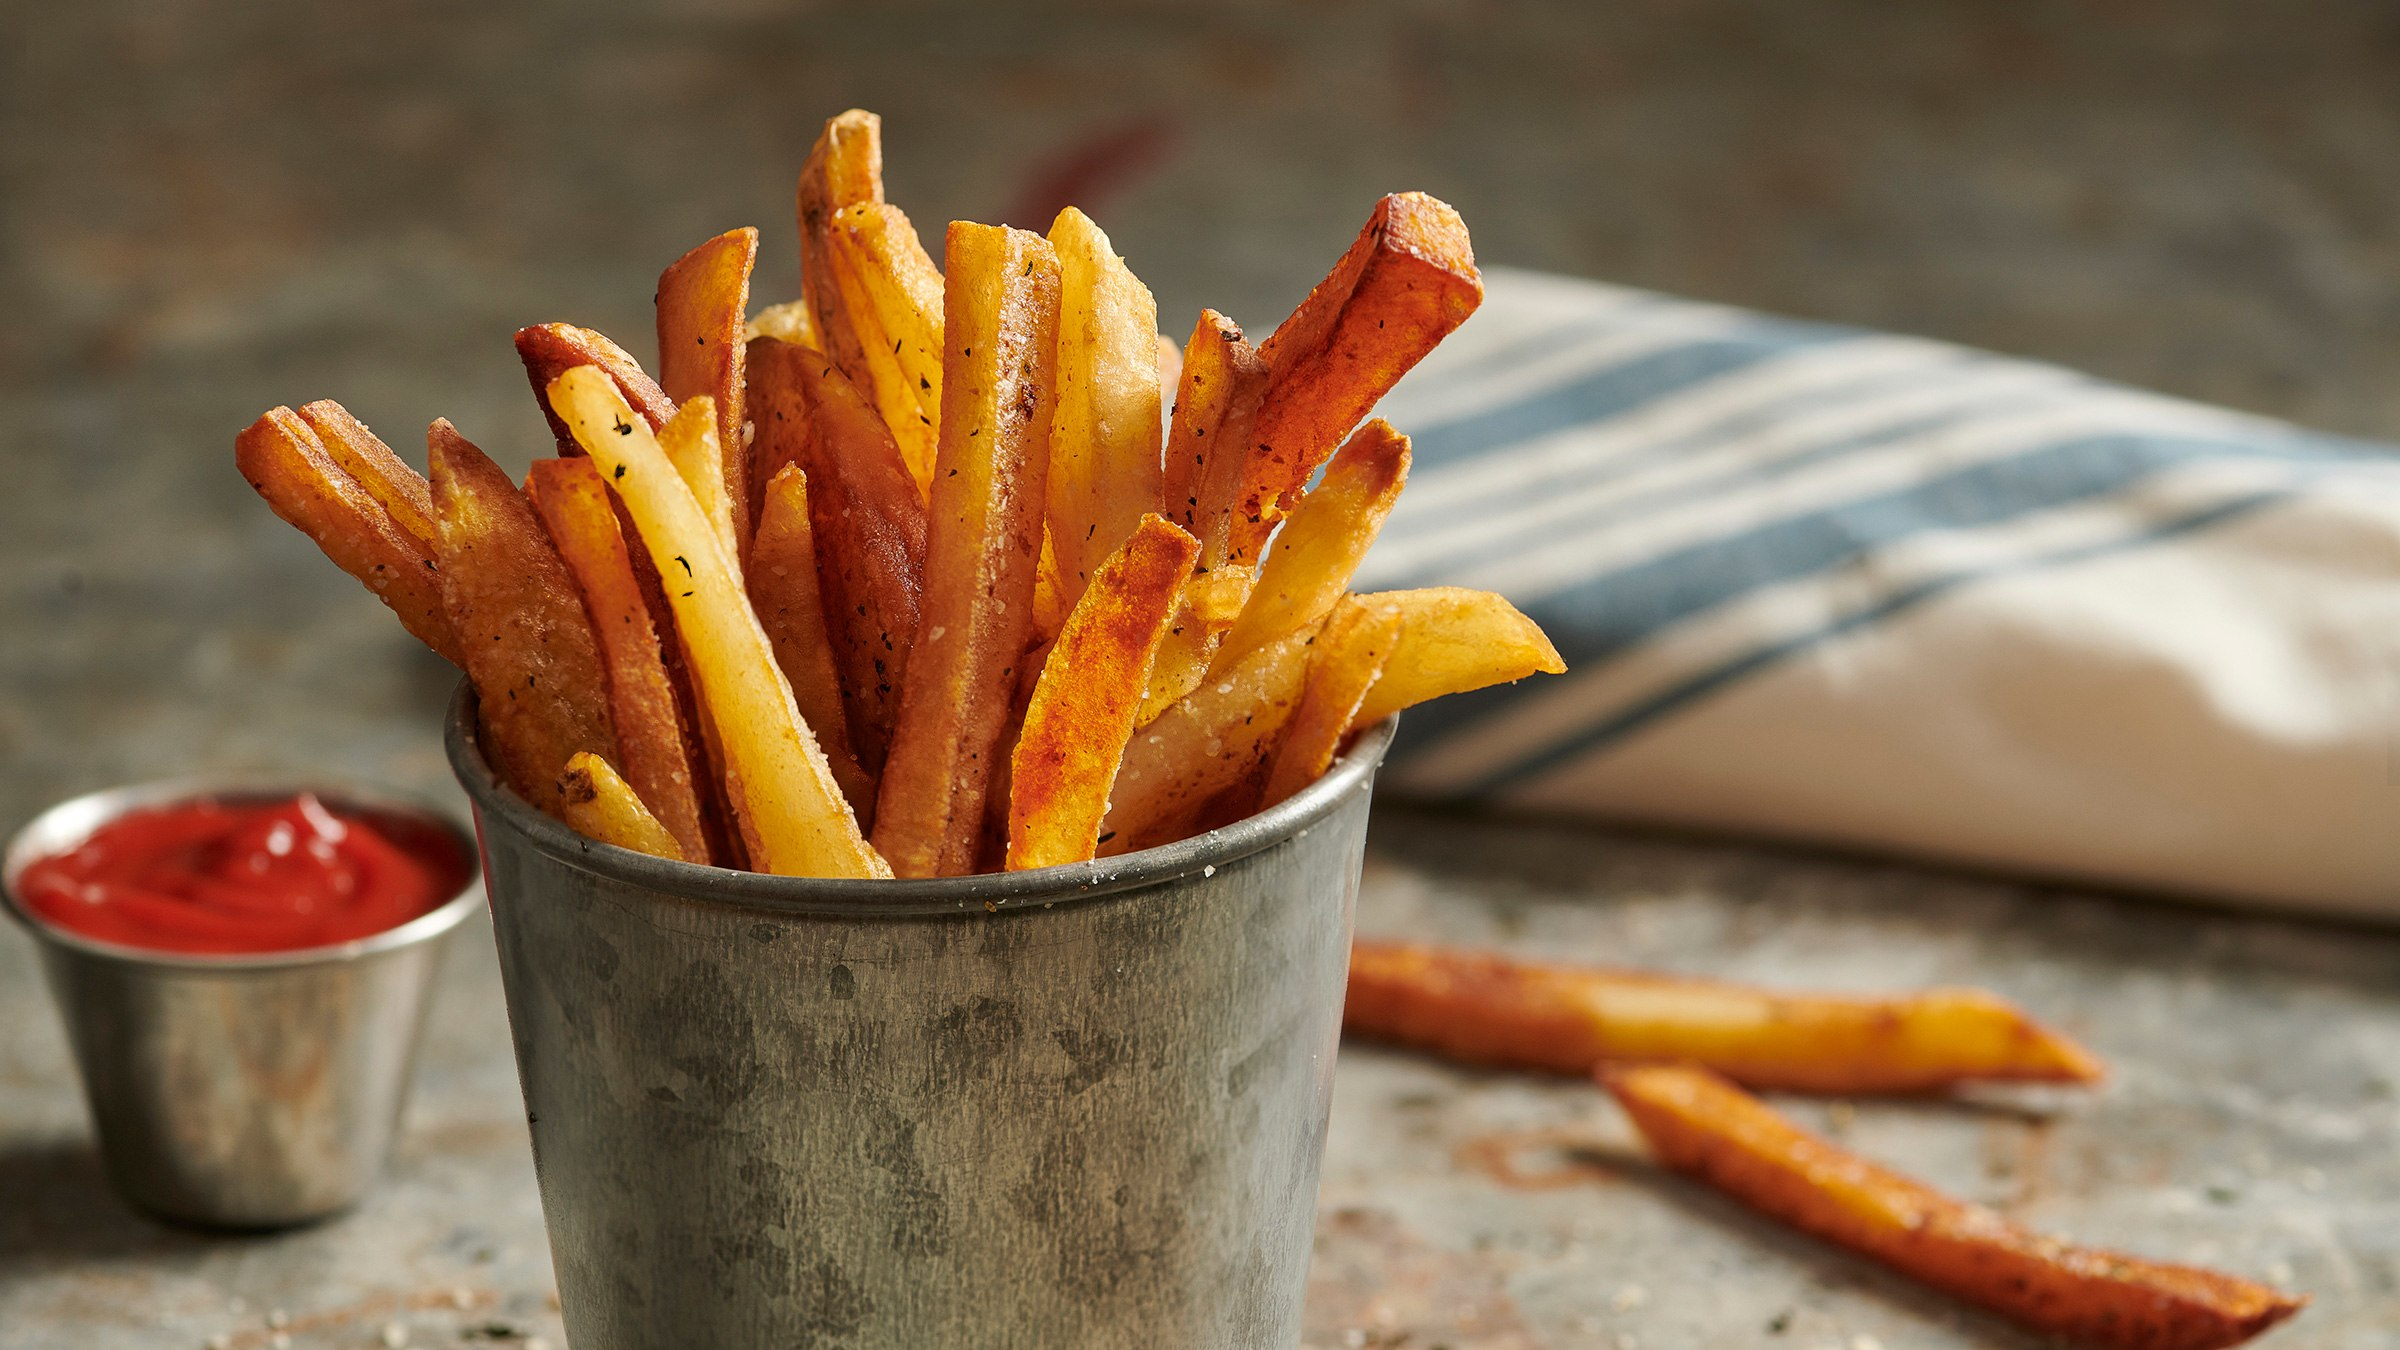 Easy Homemade French Fries